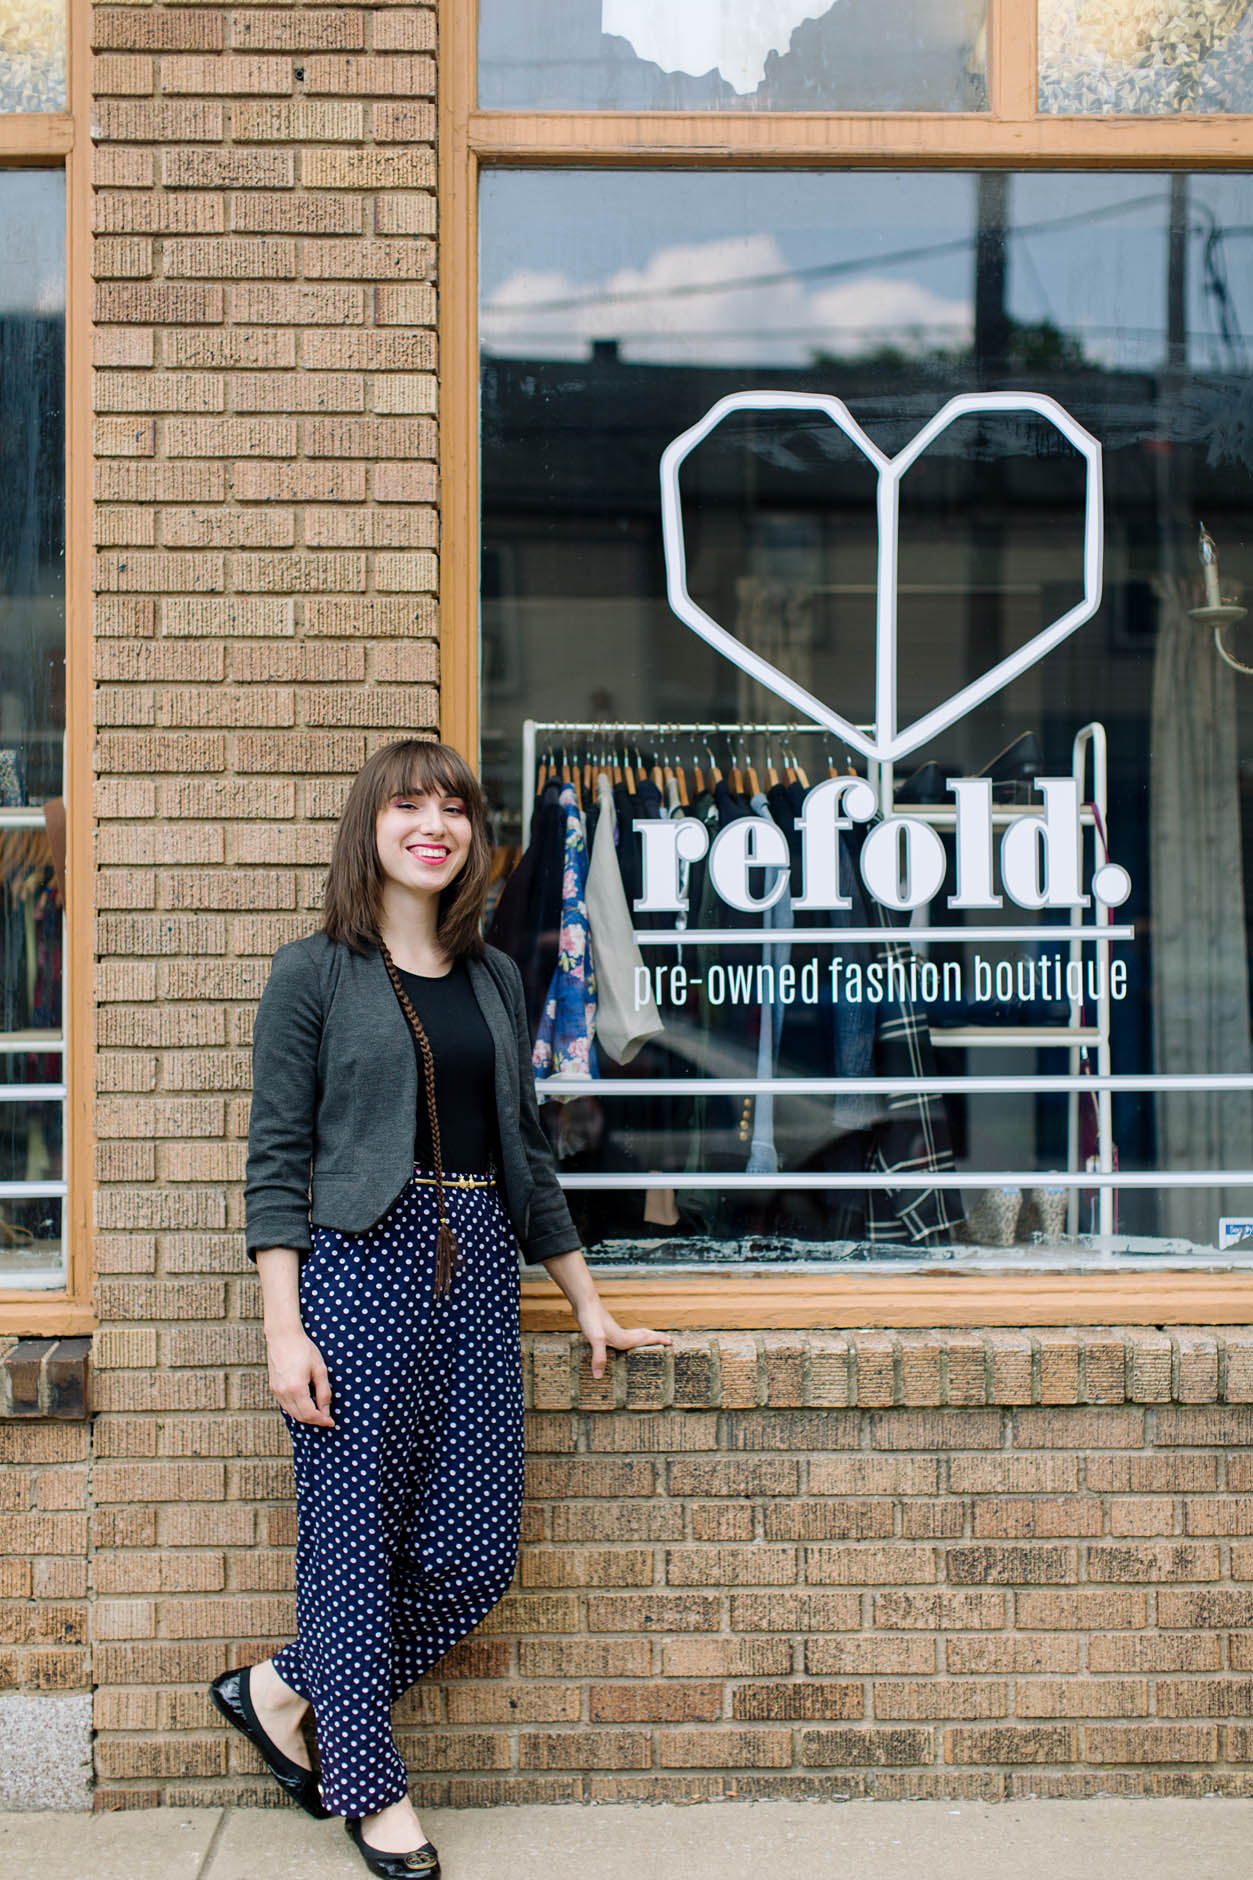 Your Neighborhood: Refold